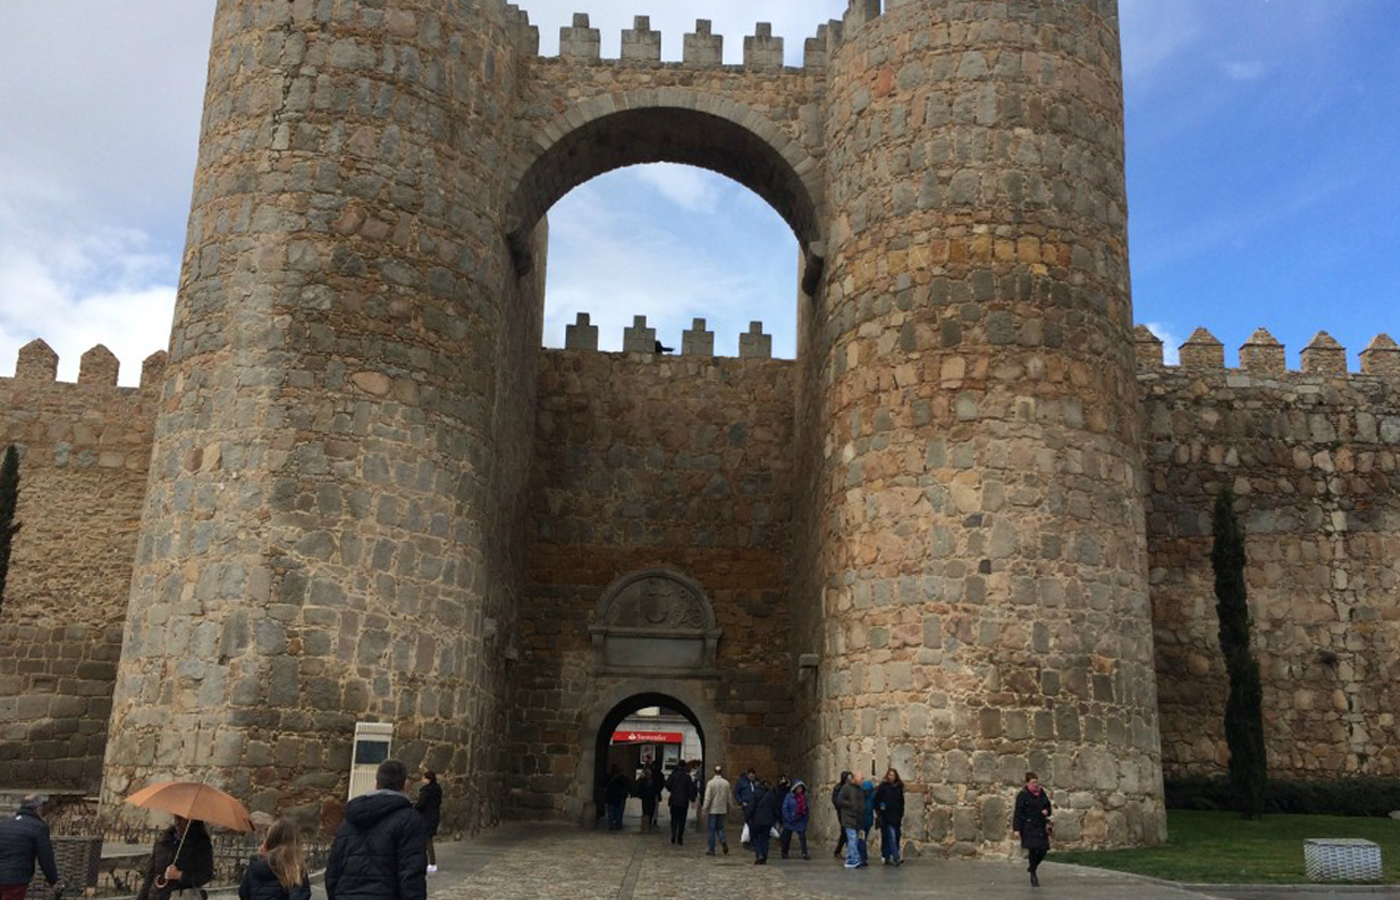 VISIT TO AVILA 8 HOURS IN TAXI UP TO 8 PEOPLE